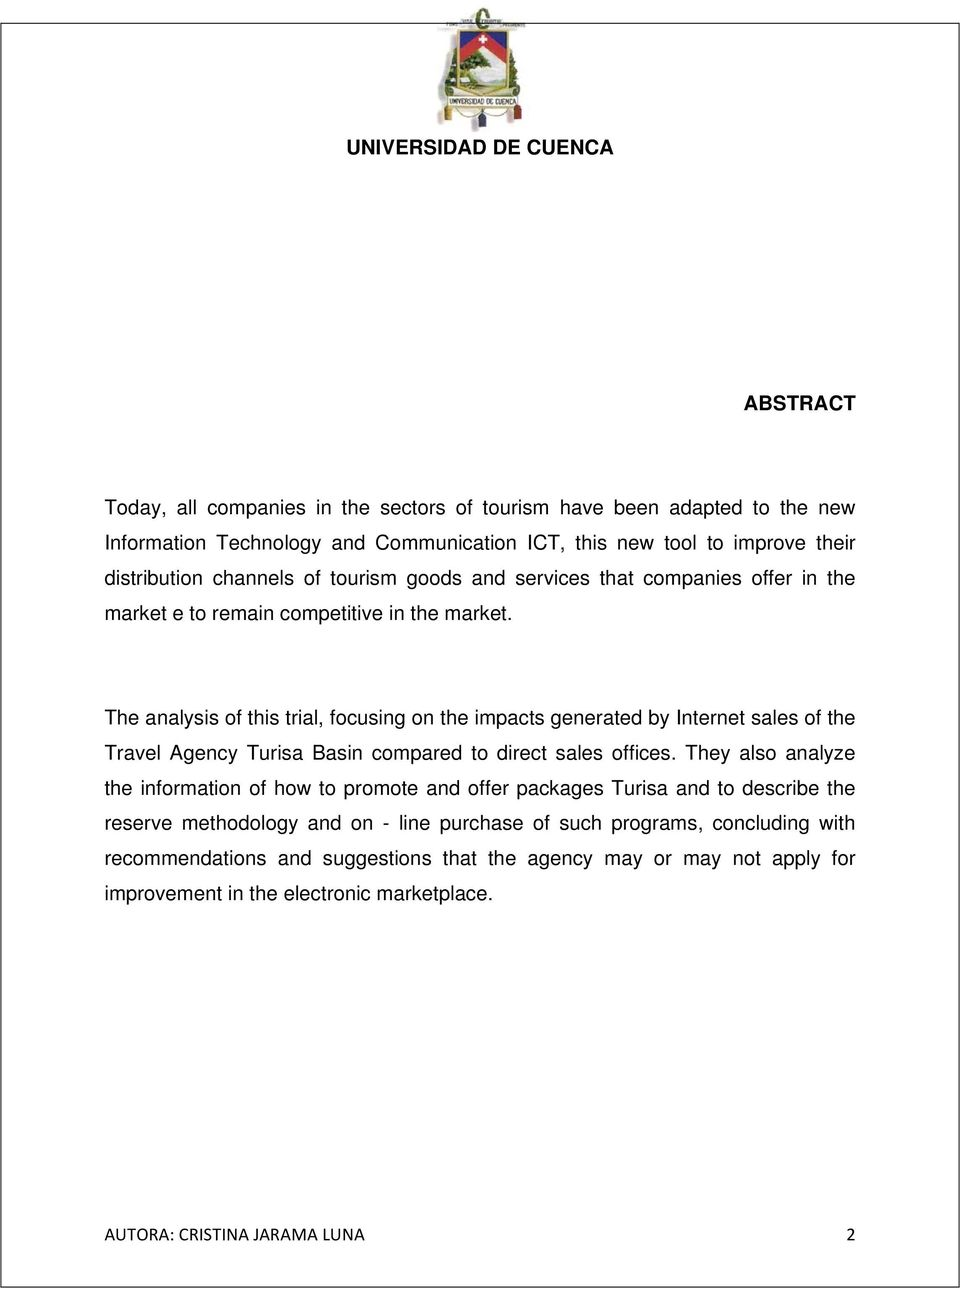 The analysis of this trial, focusing on the impacts generated by Internet sales of the Travel Agency Turisa Basin compared to direct sales offices.